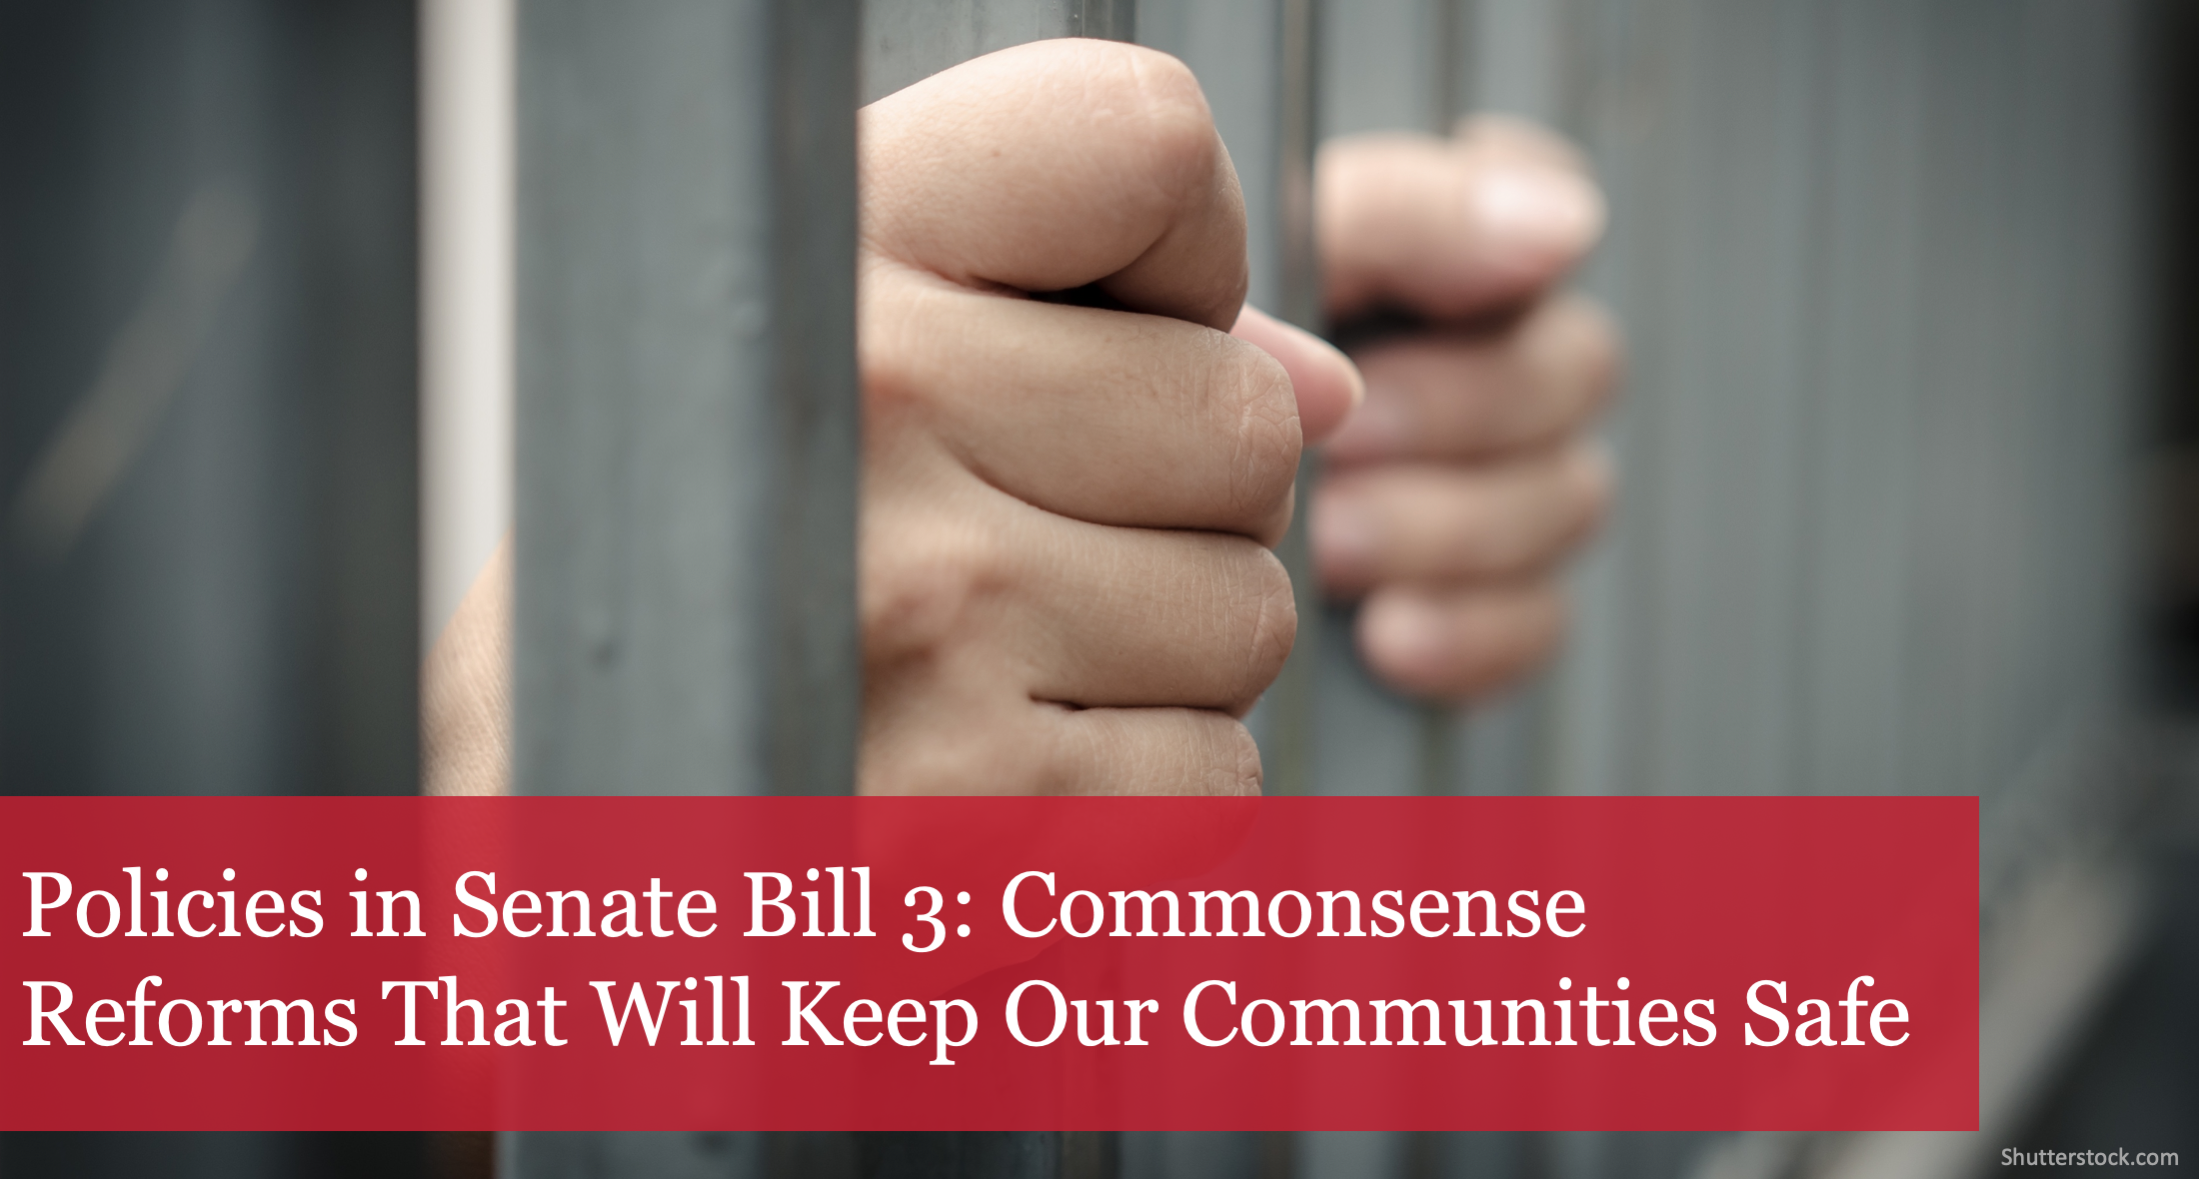 The Buckeye Institute: Policies in Senate Bill 3 Are Commonsense Reforms That Will Keep Our Communities Safe